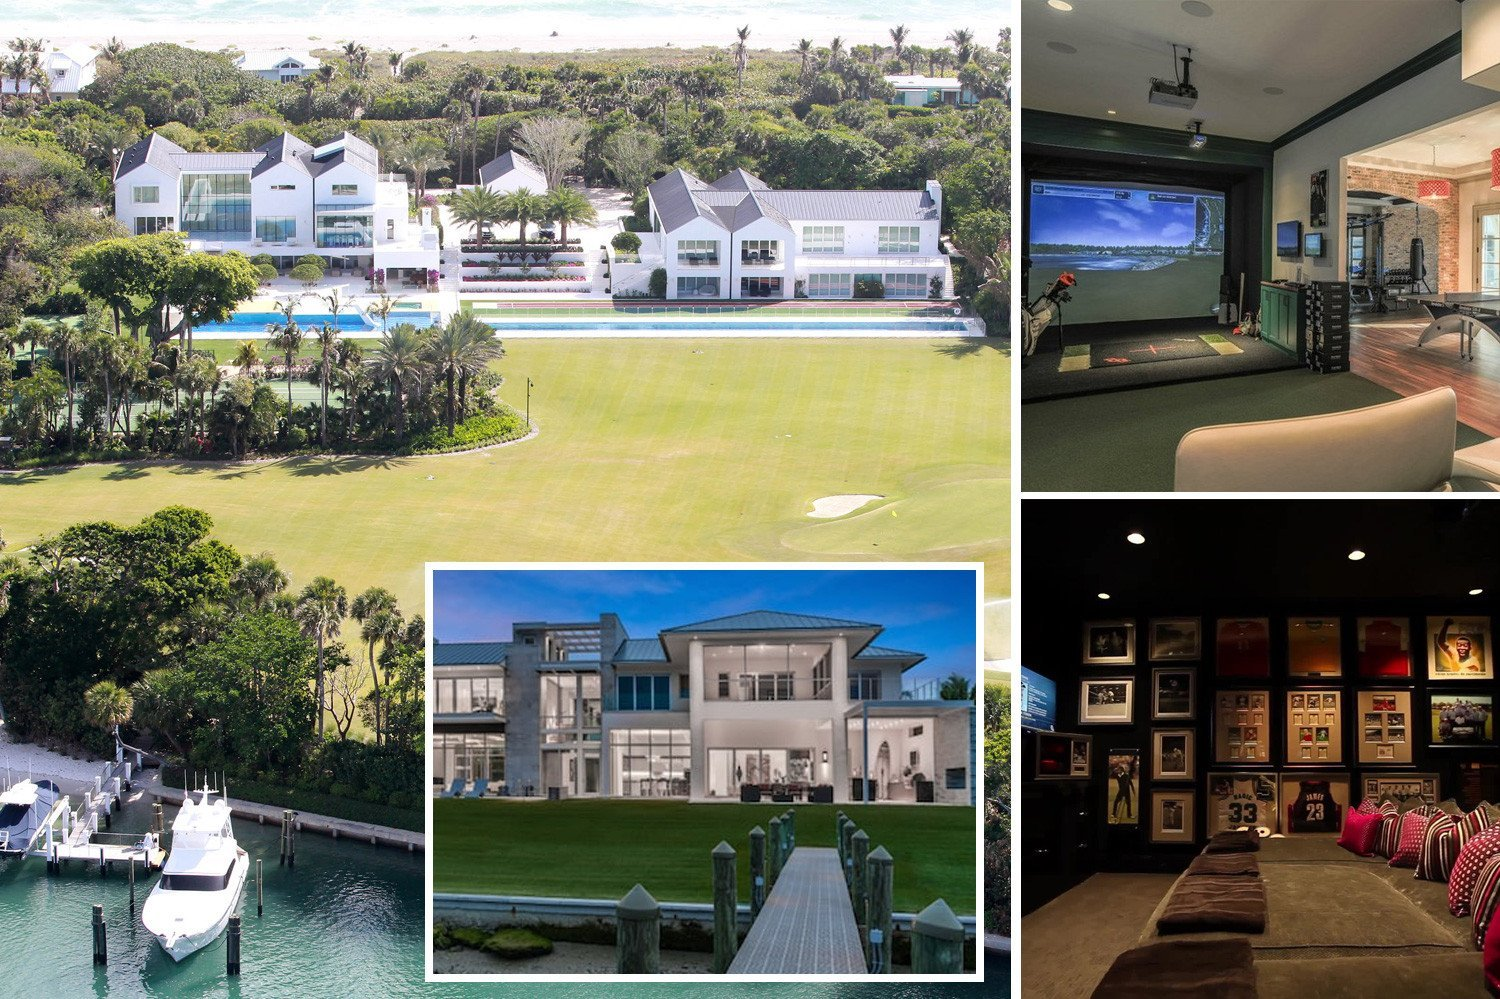 See the incredible mansions (and one bus) owned by the golfers like Tiger Woods and Rory McIlroy playing in the Masters 2019